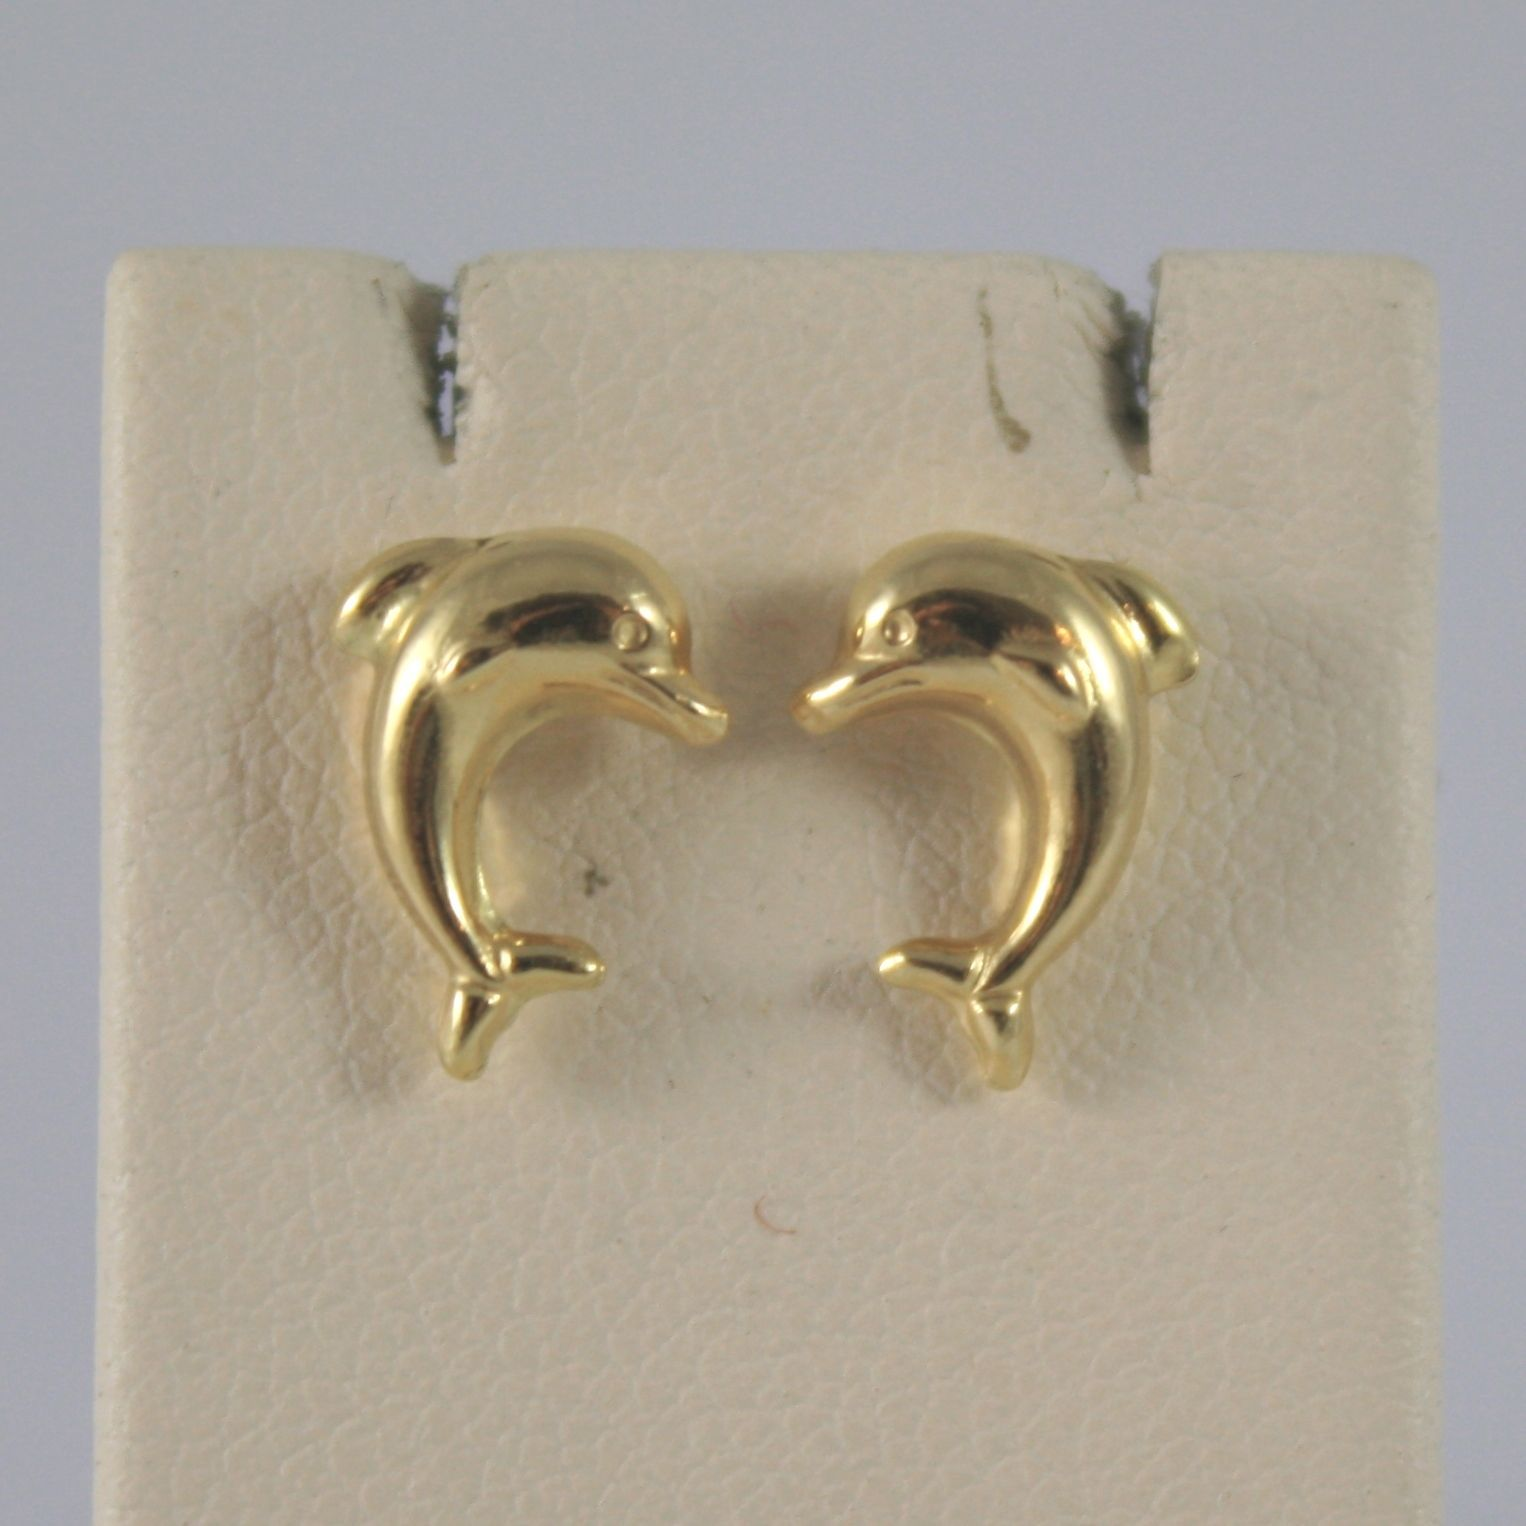 18K SOLID YELLOW GOLD EARRINGS WITH DOLPHINS LENGTH 0,39 IN MADE IN ITALY 18K